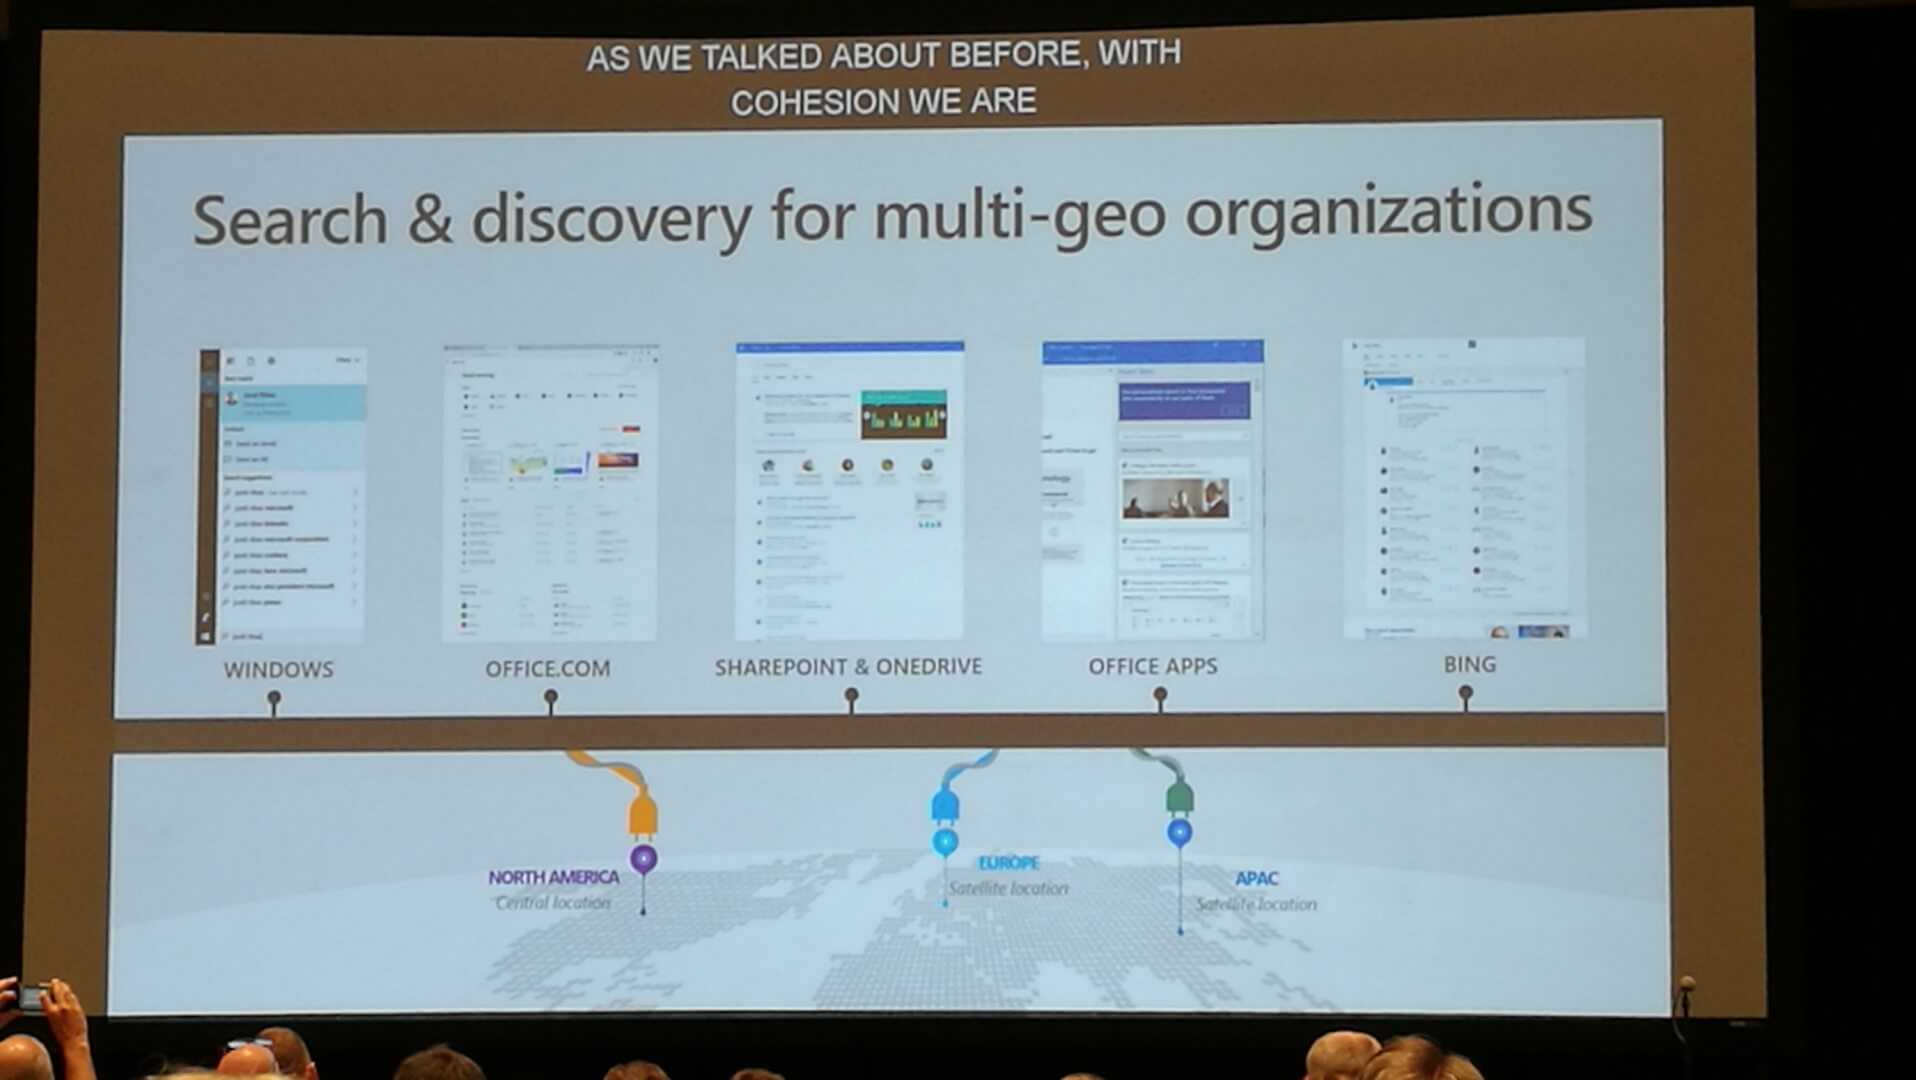 Texte de remplacement généré par une machine : ASWÈTA ED ABOUT BEFORE, WITH COHESION WE ARE Search & discovery for multi-geo organizations WINDOWS OFFICE.COM NORTH SHAREPOINT & ONEDRIVE OFFICE APPS APAC BING